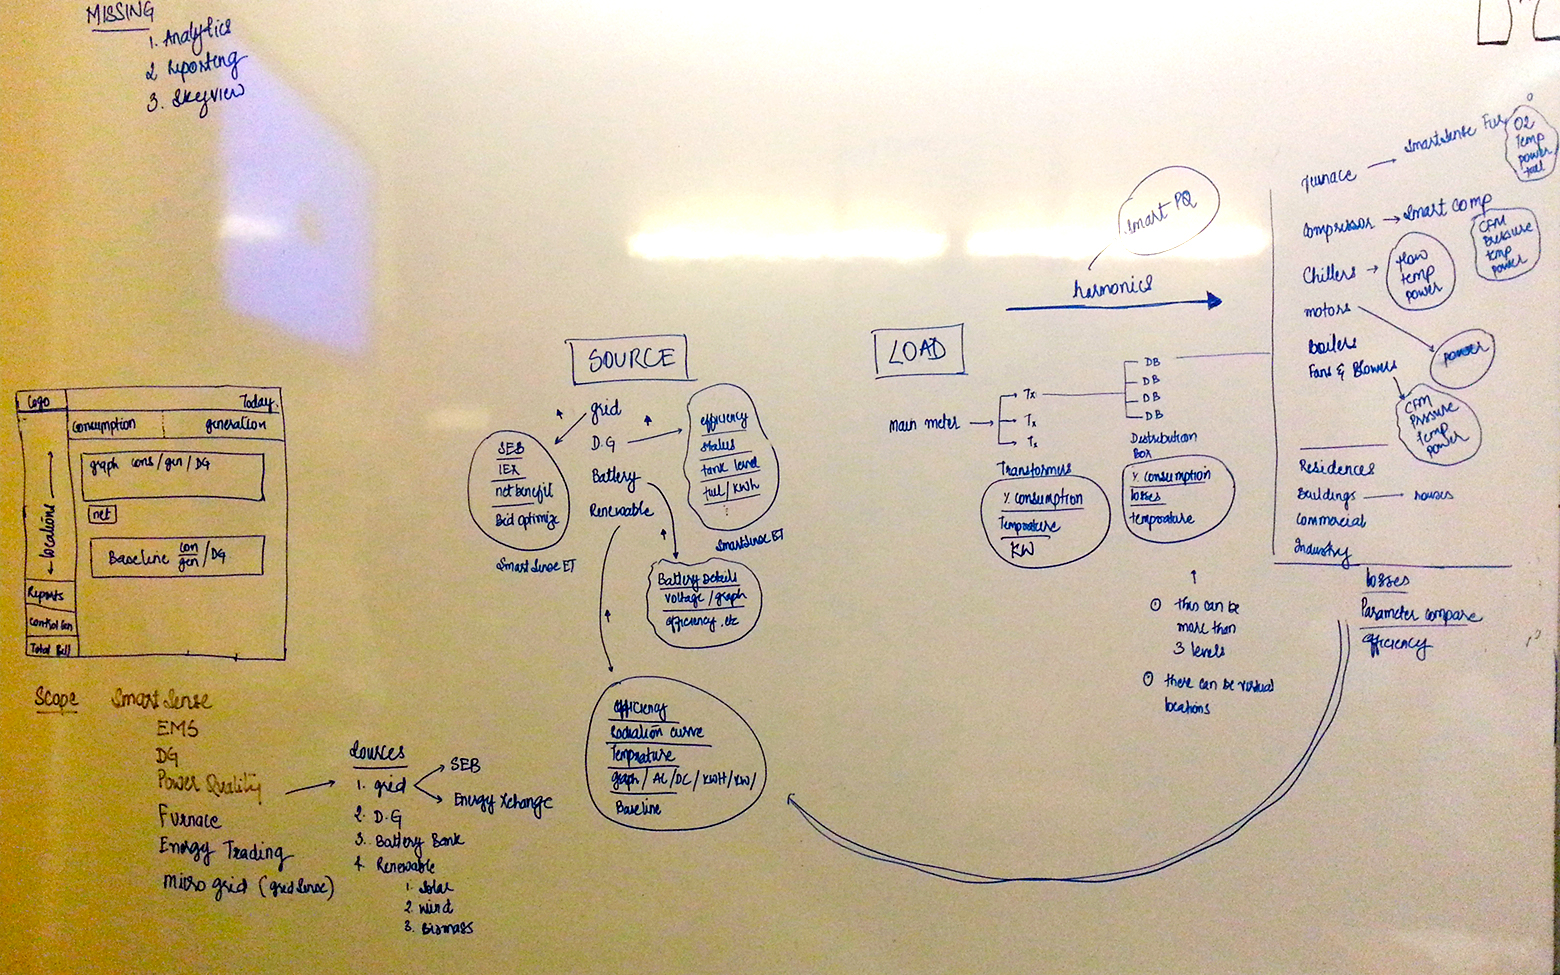 One of my first ideation sessions with the founders of Ecolibrium, detailing the product and its components